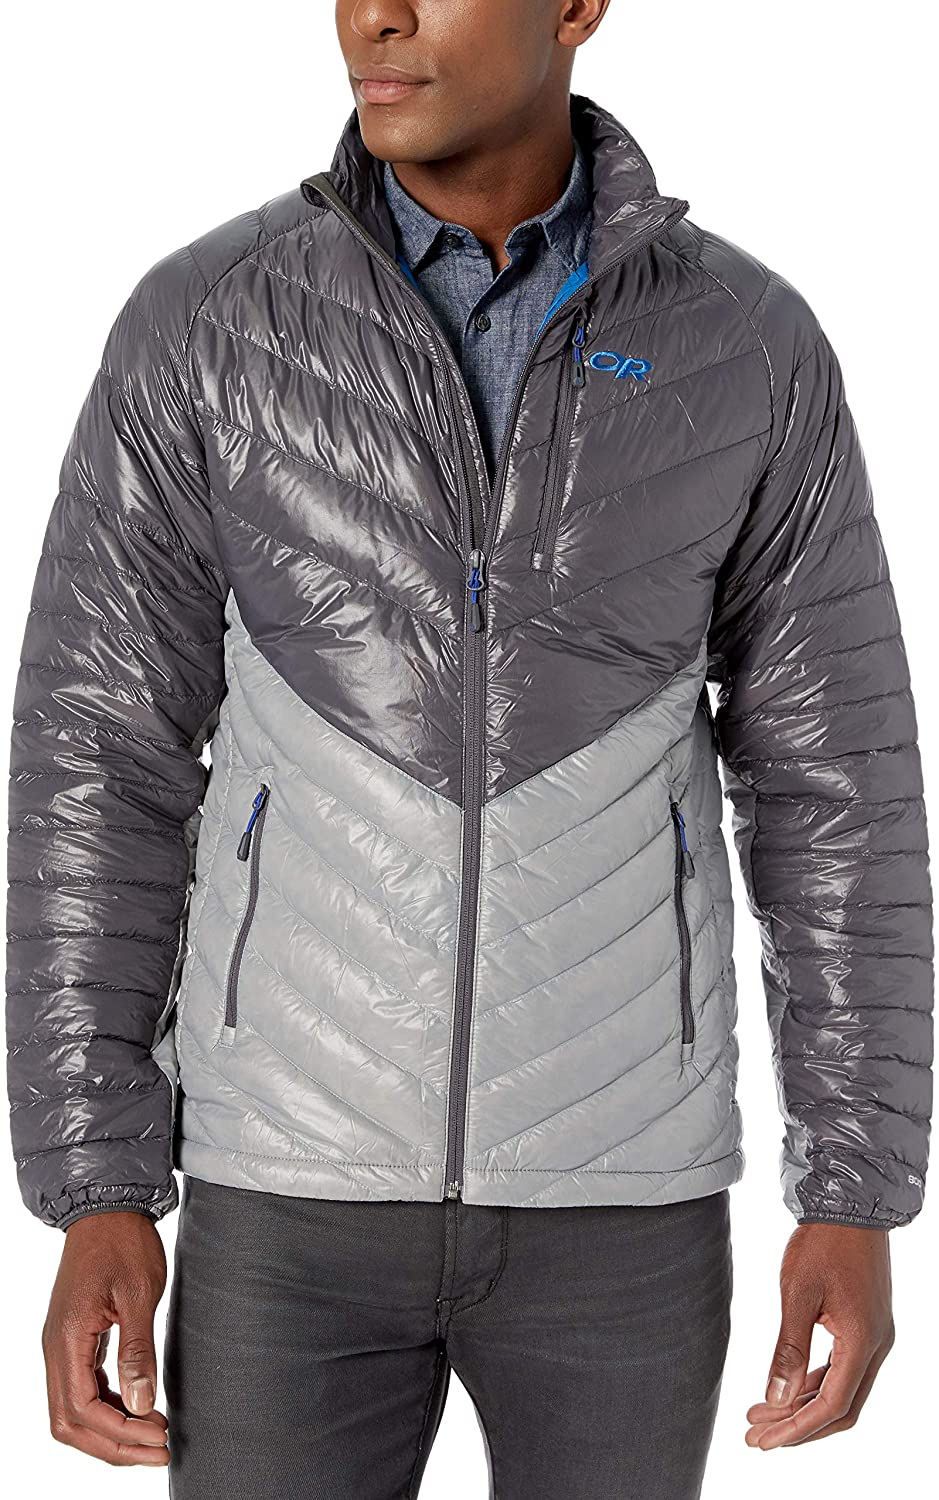 Outdoor Research mens Ms Illuminate Down Jacket